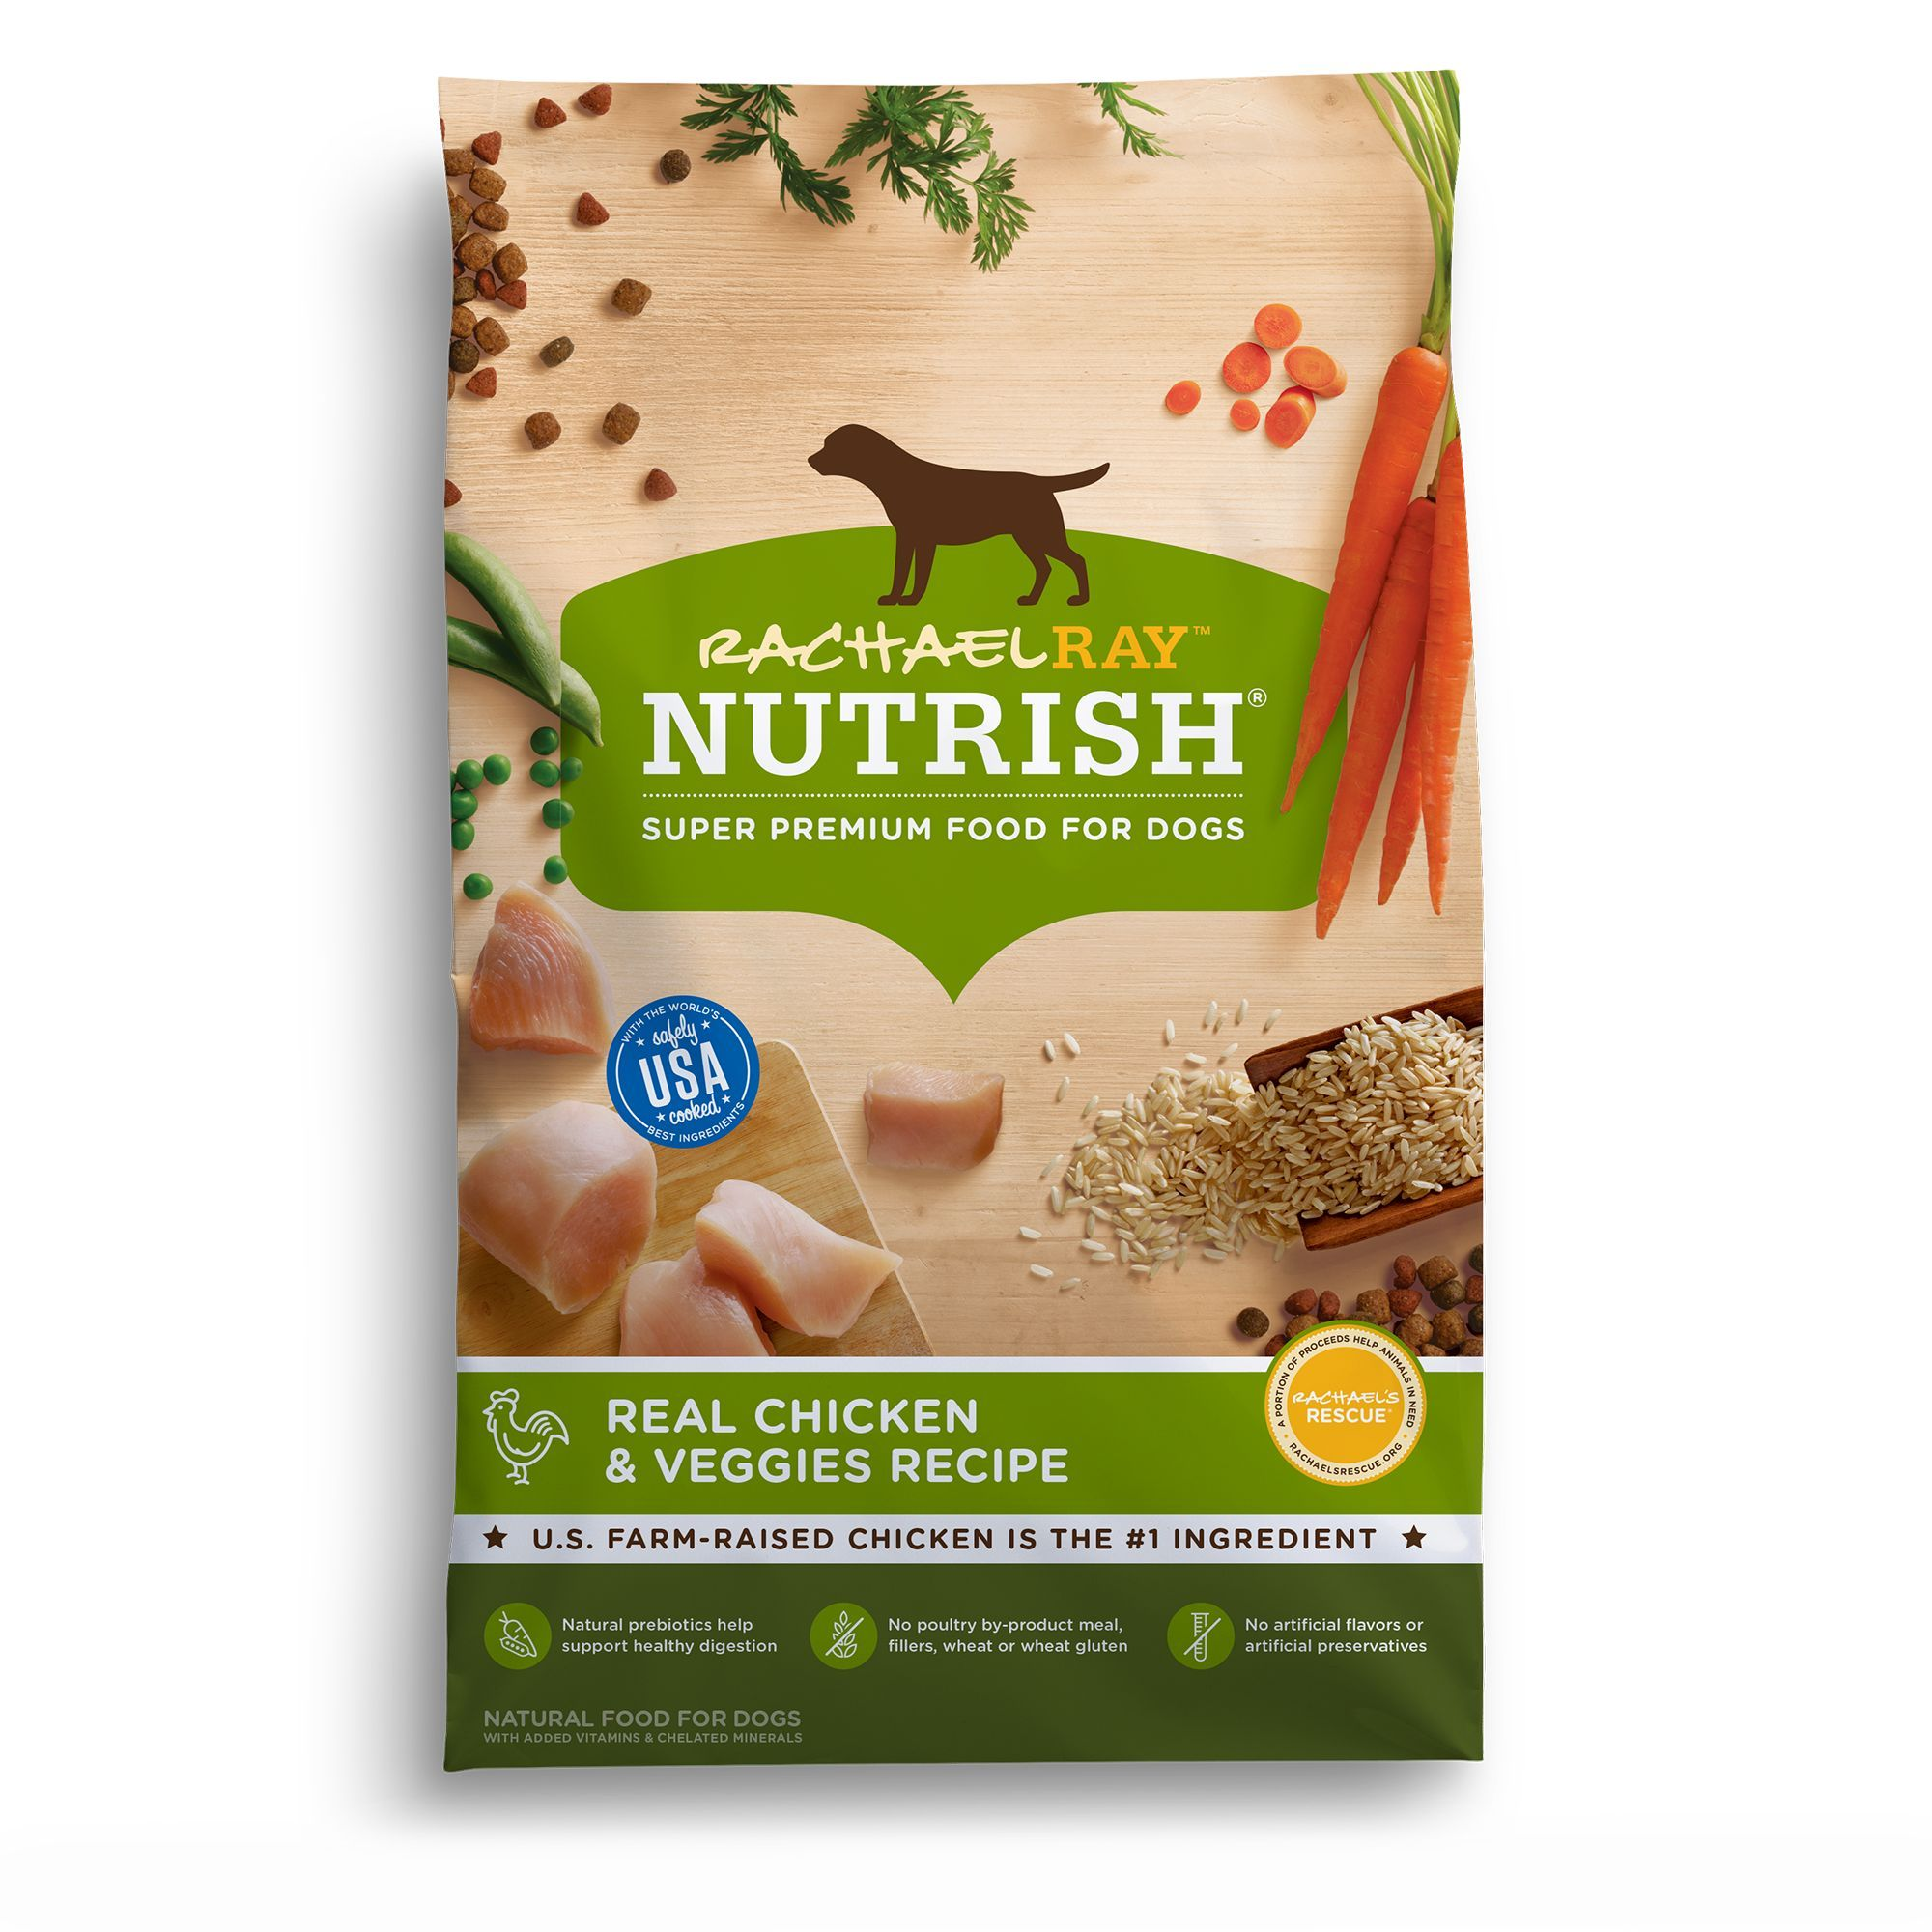 Rachael Ray Nutrish Dog Food Natural Chicken And Veggies